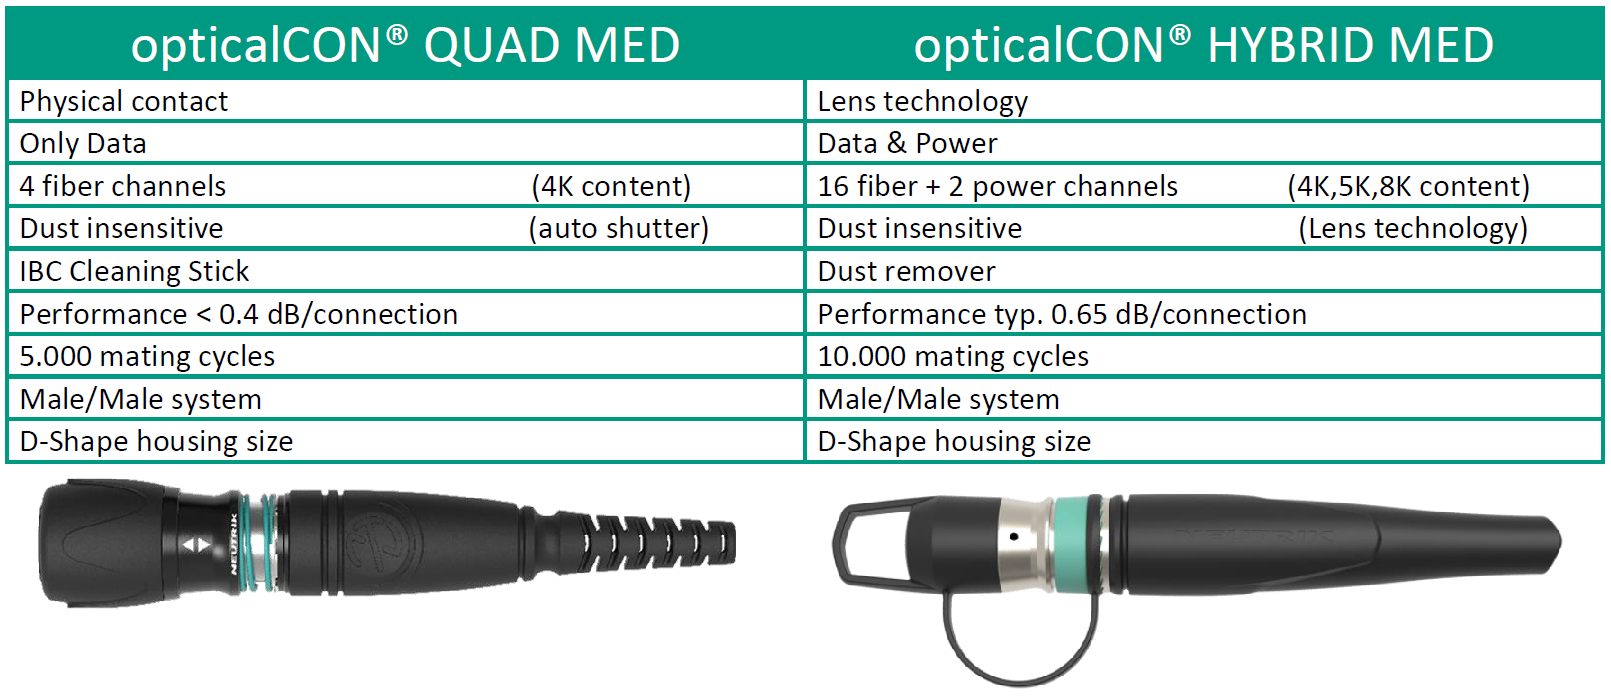 Neutrik Medical comparison